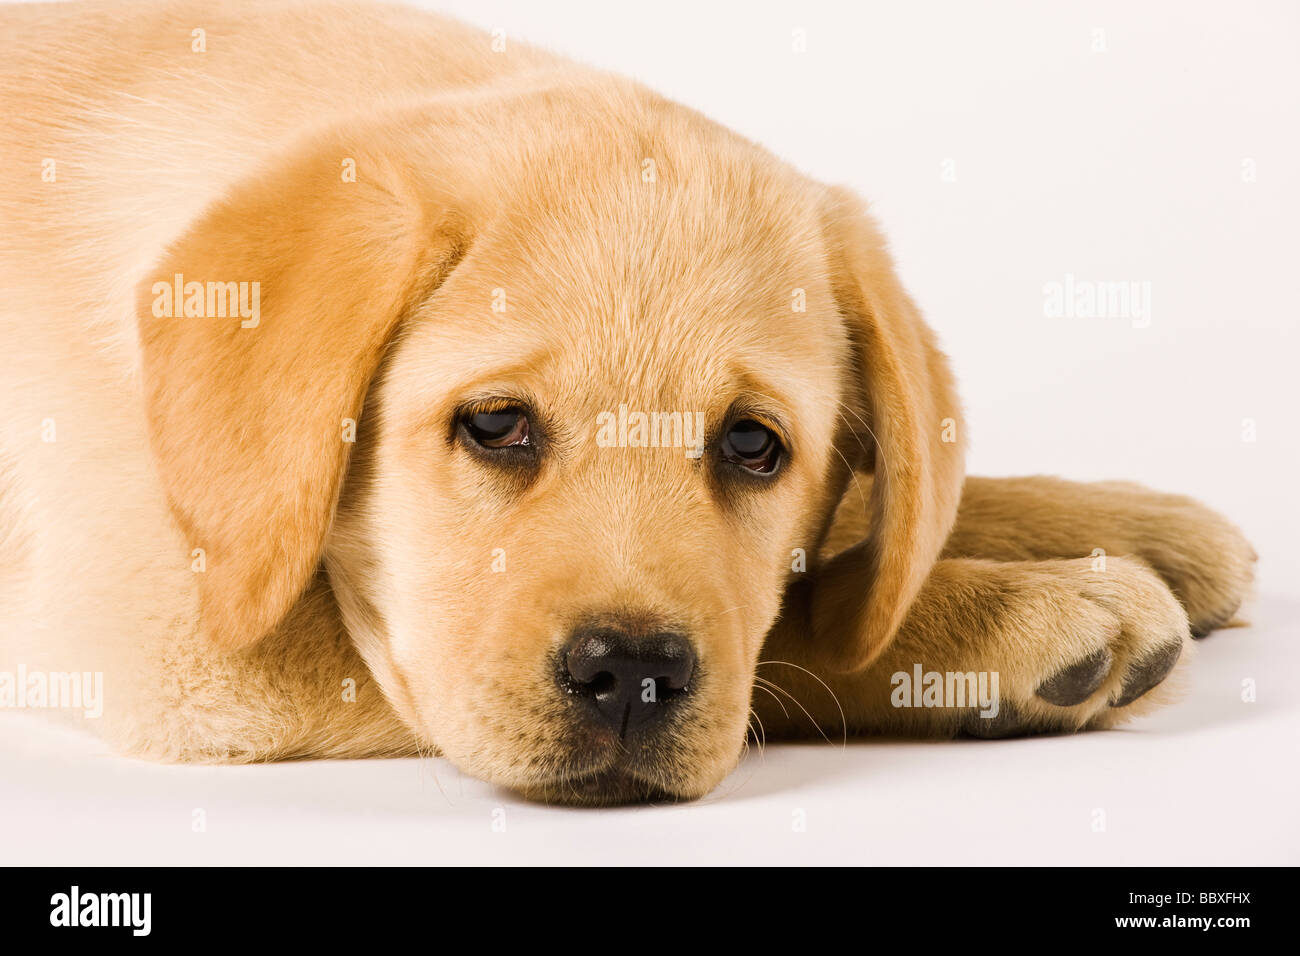 Golden Labrador Retriever puppy Canis familiaris Close up portrait of Labrador Popular working dogs - Stock Image